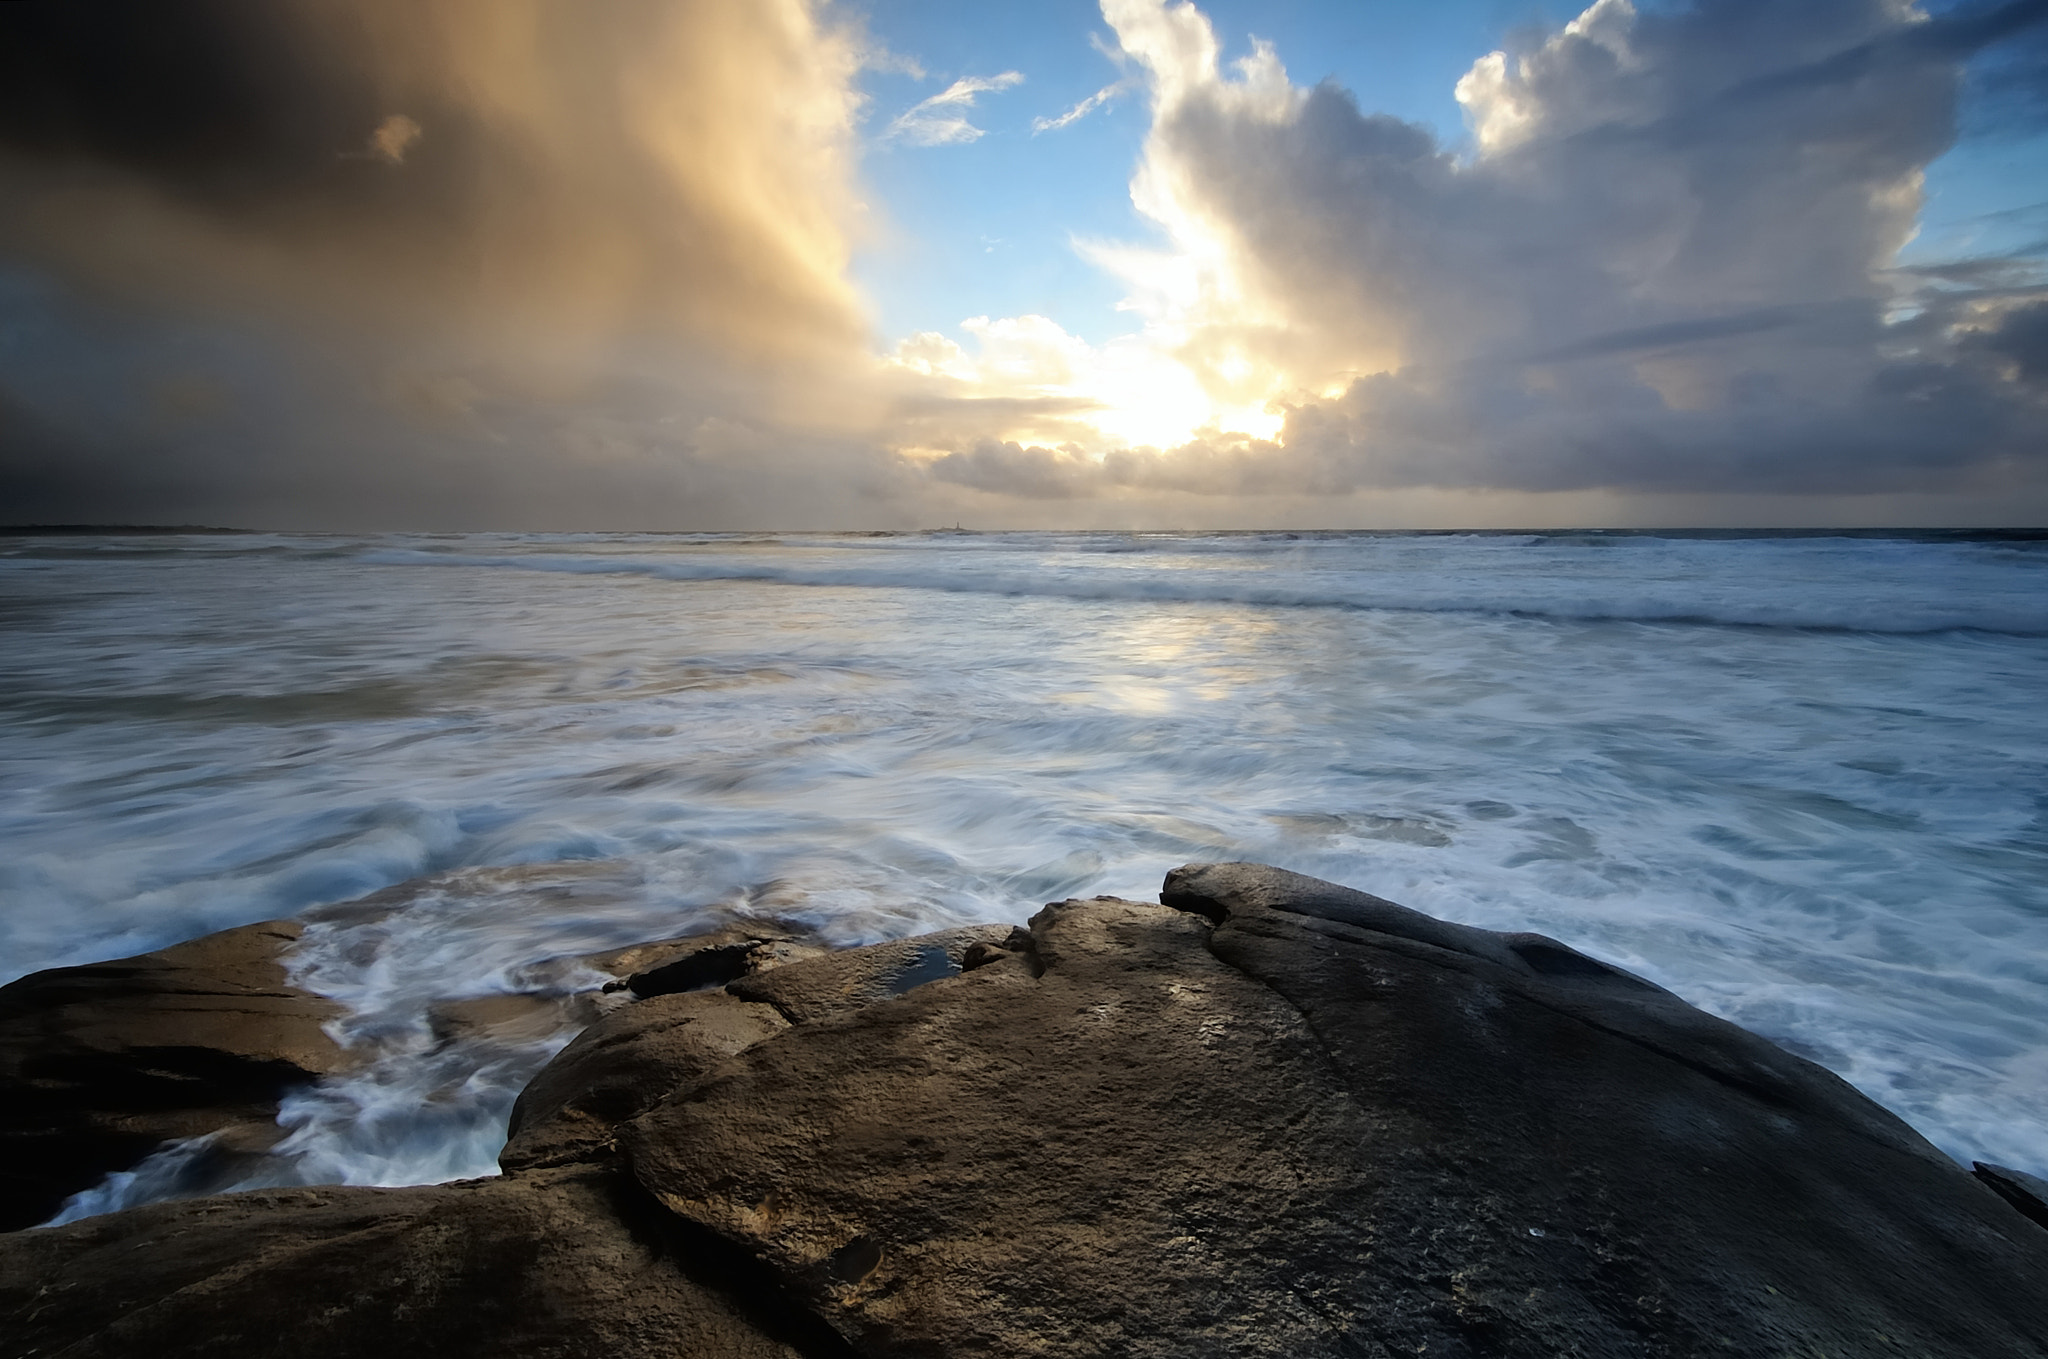 Photograph Somewhere in the North Sea by soli m on 500px